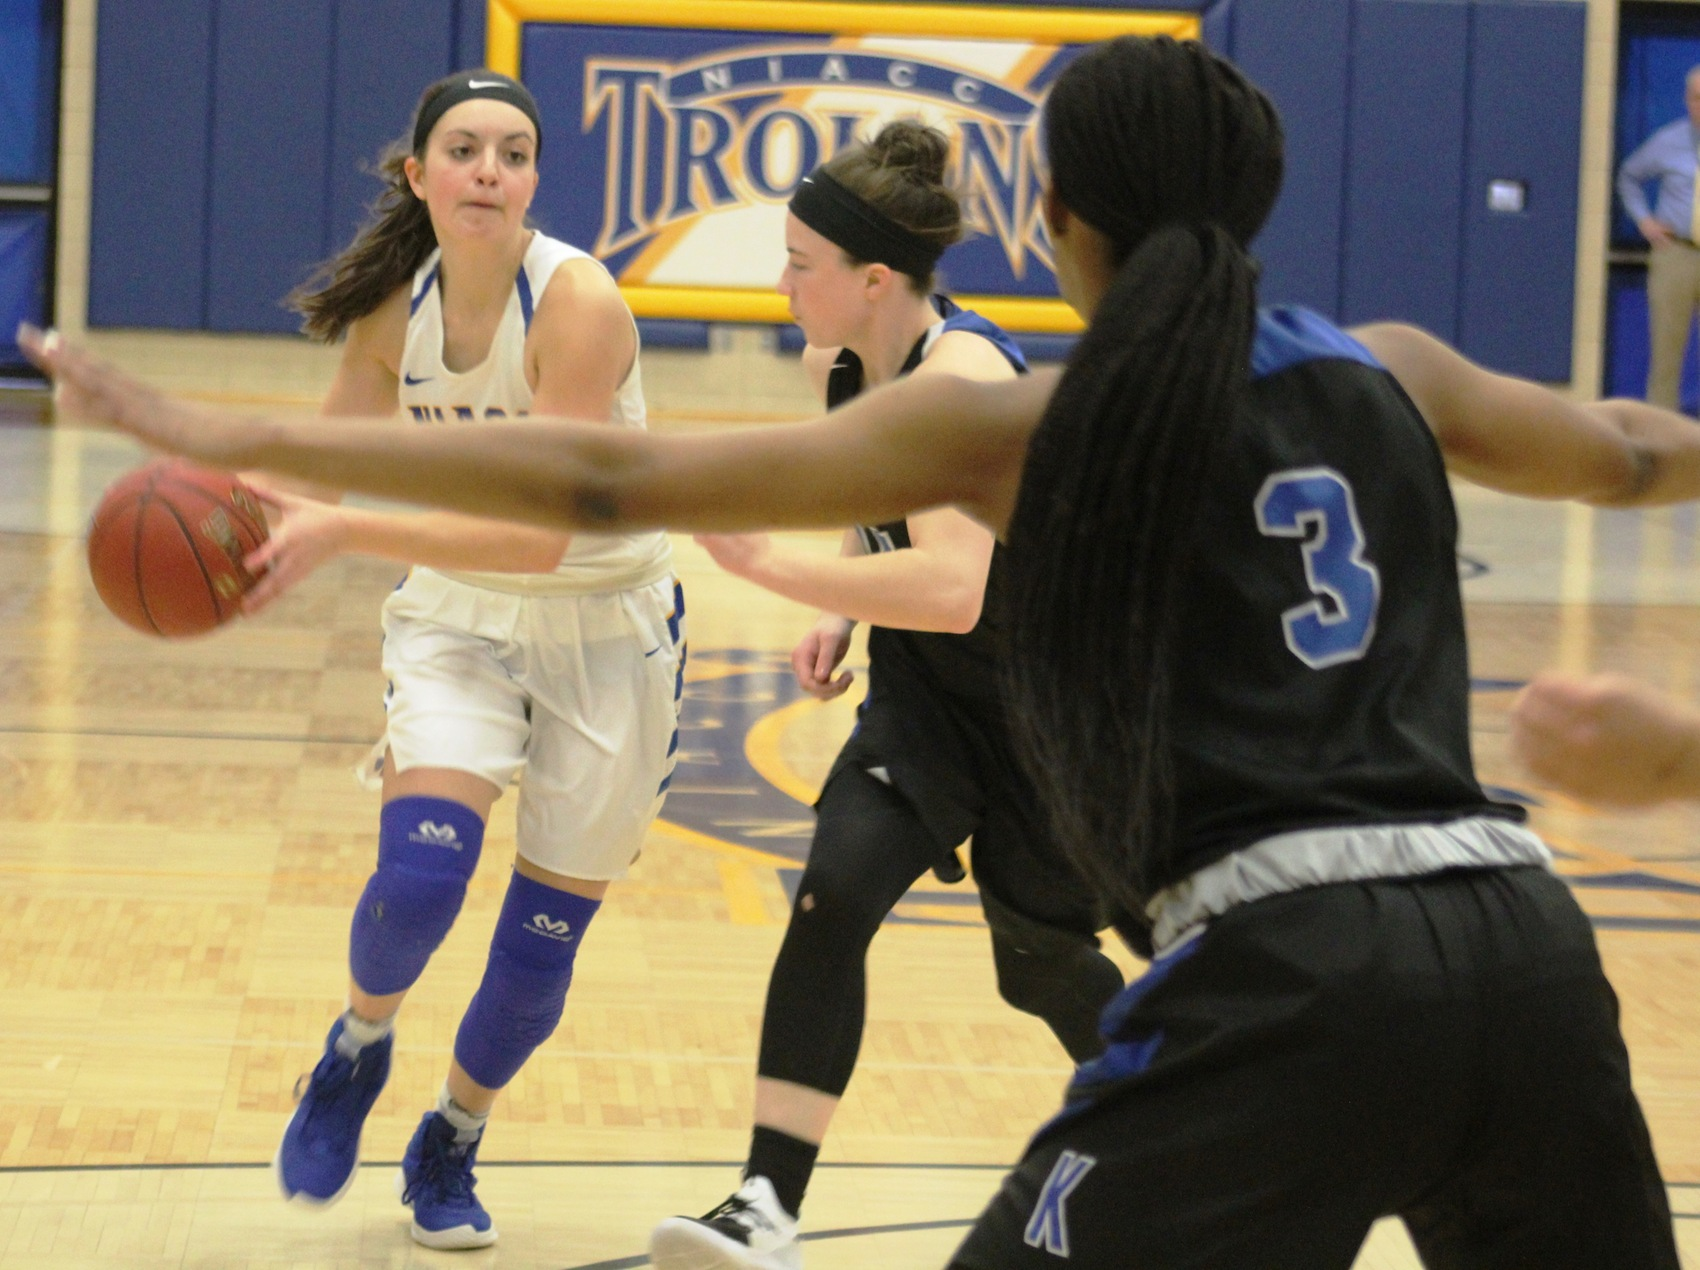 NIACC's Mandy Willems was selected as the national player of the week for the third time.